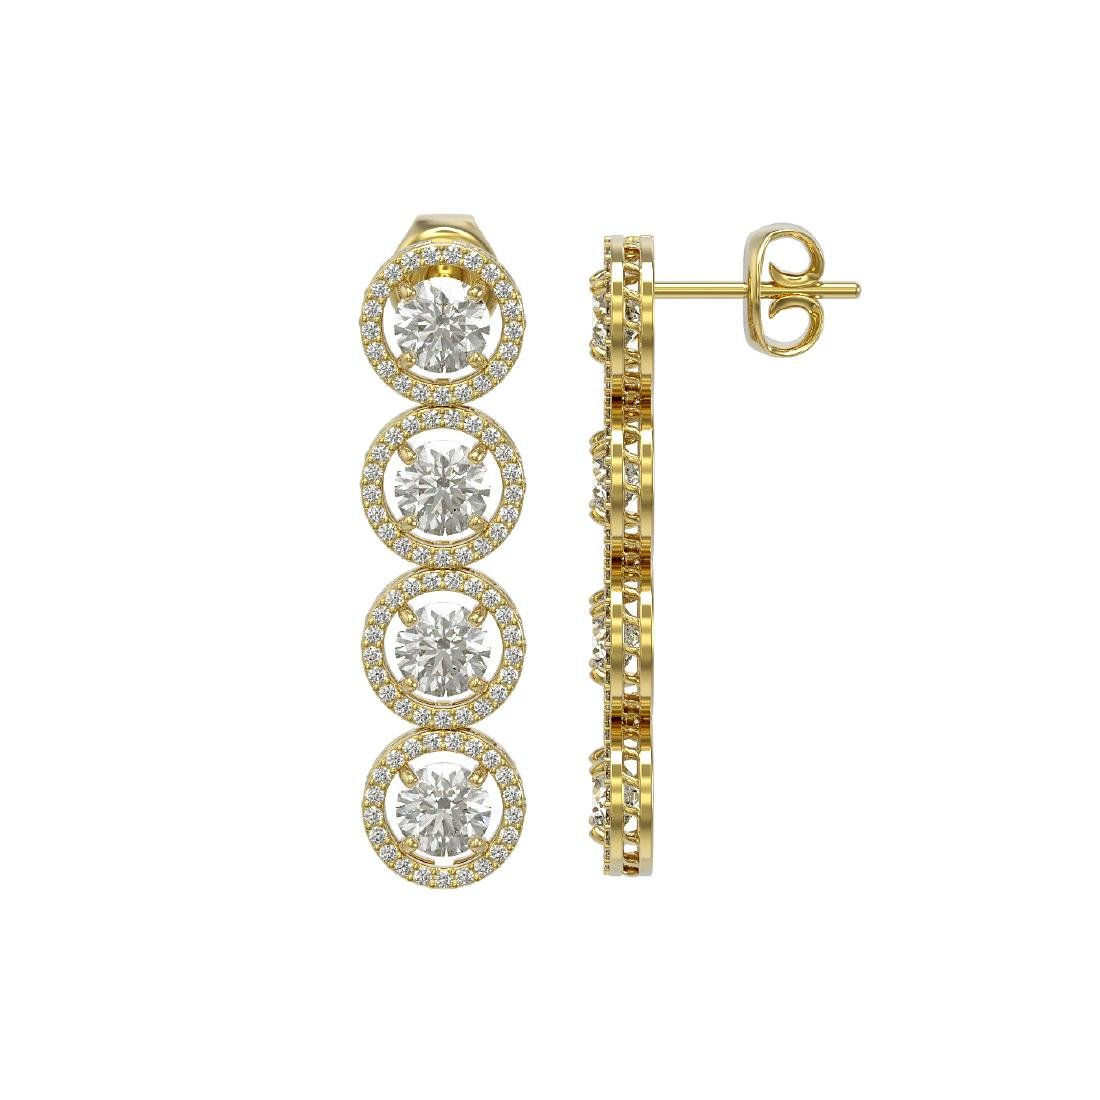 6.14 CTW Diamond Designer Earrings 18K Yellow Gold - 2